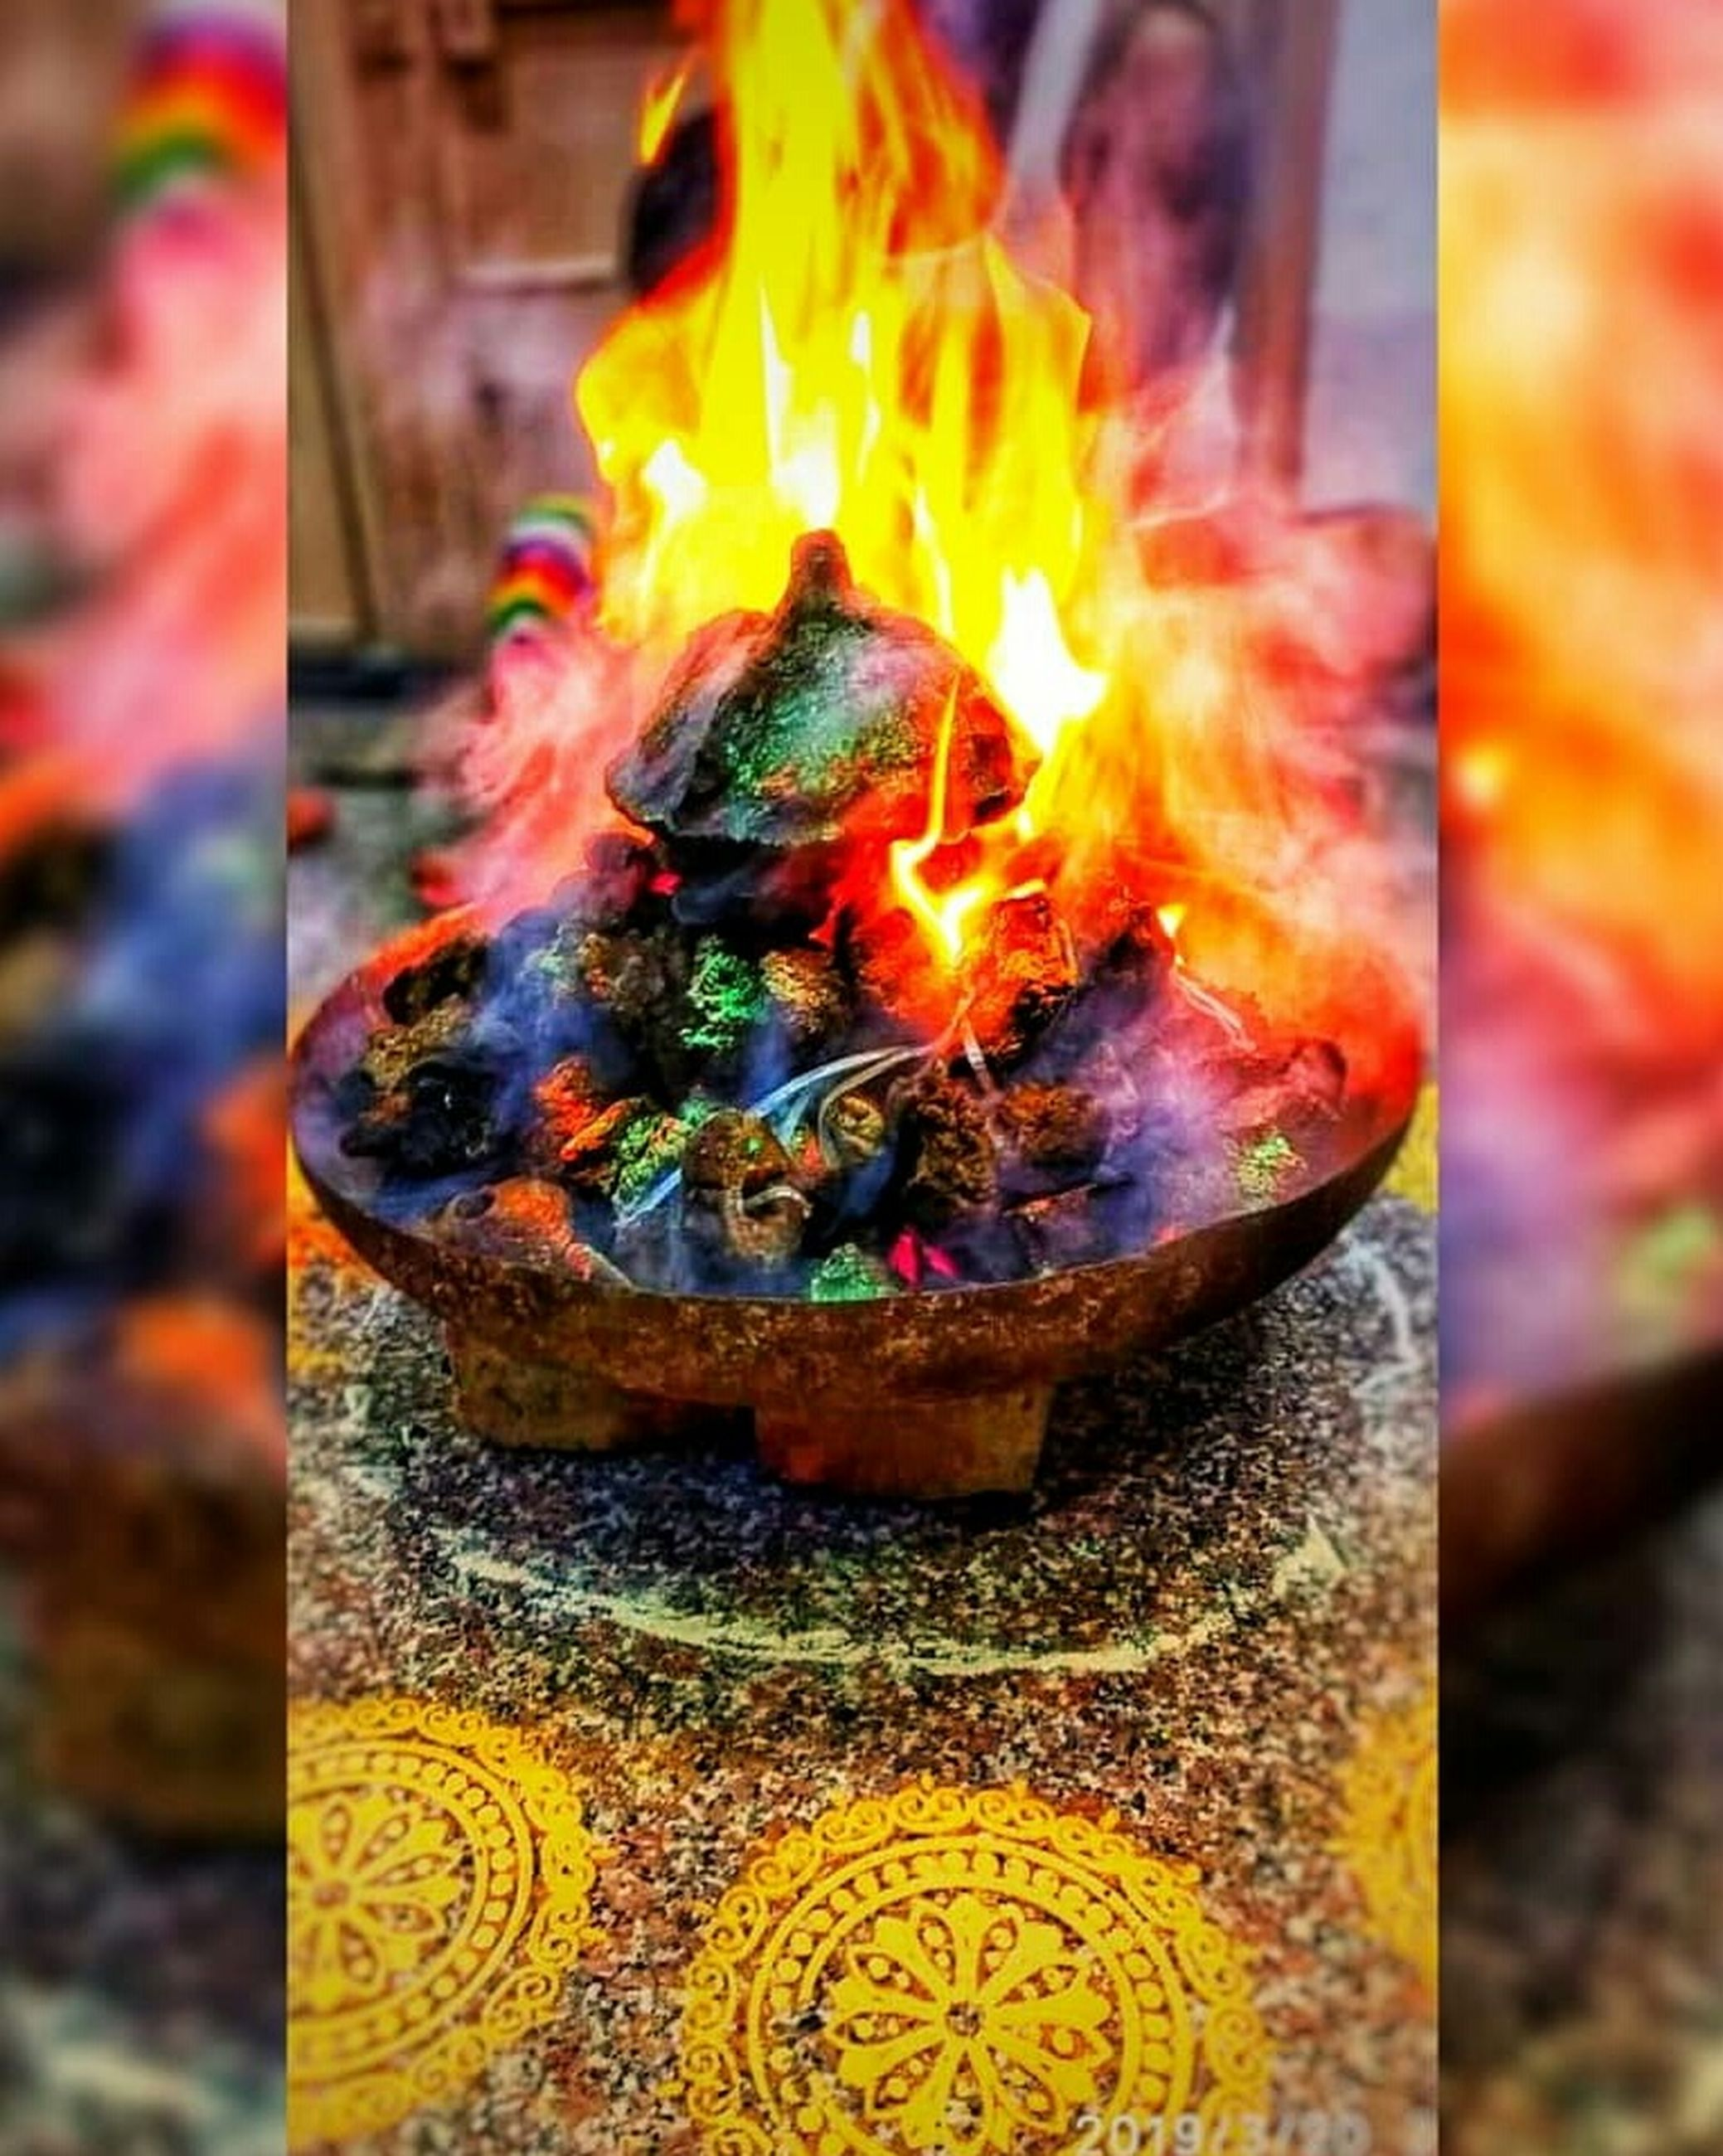 burning, fire, flame, heat - temperature, fire - natural phenomenon, nature, no people, spirituality, belief, close-up, religion, outdoors, glowing, motion, place of worship, architecture, art and craft, focus on foreground, environment, day